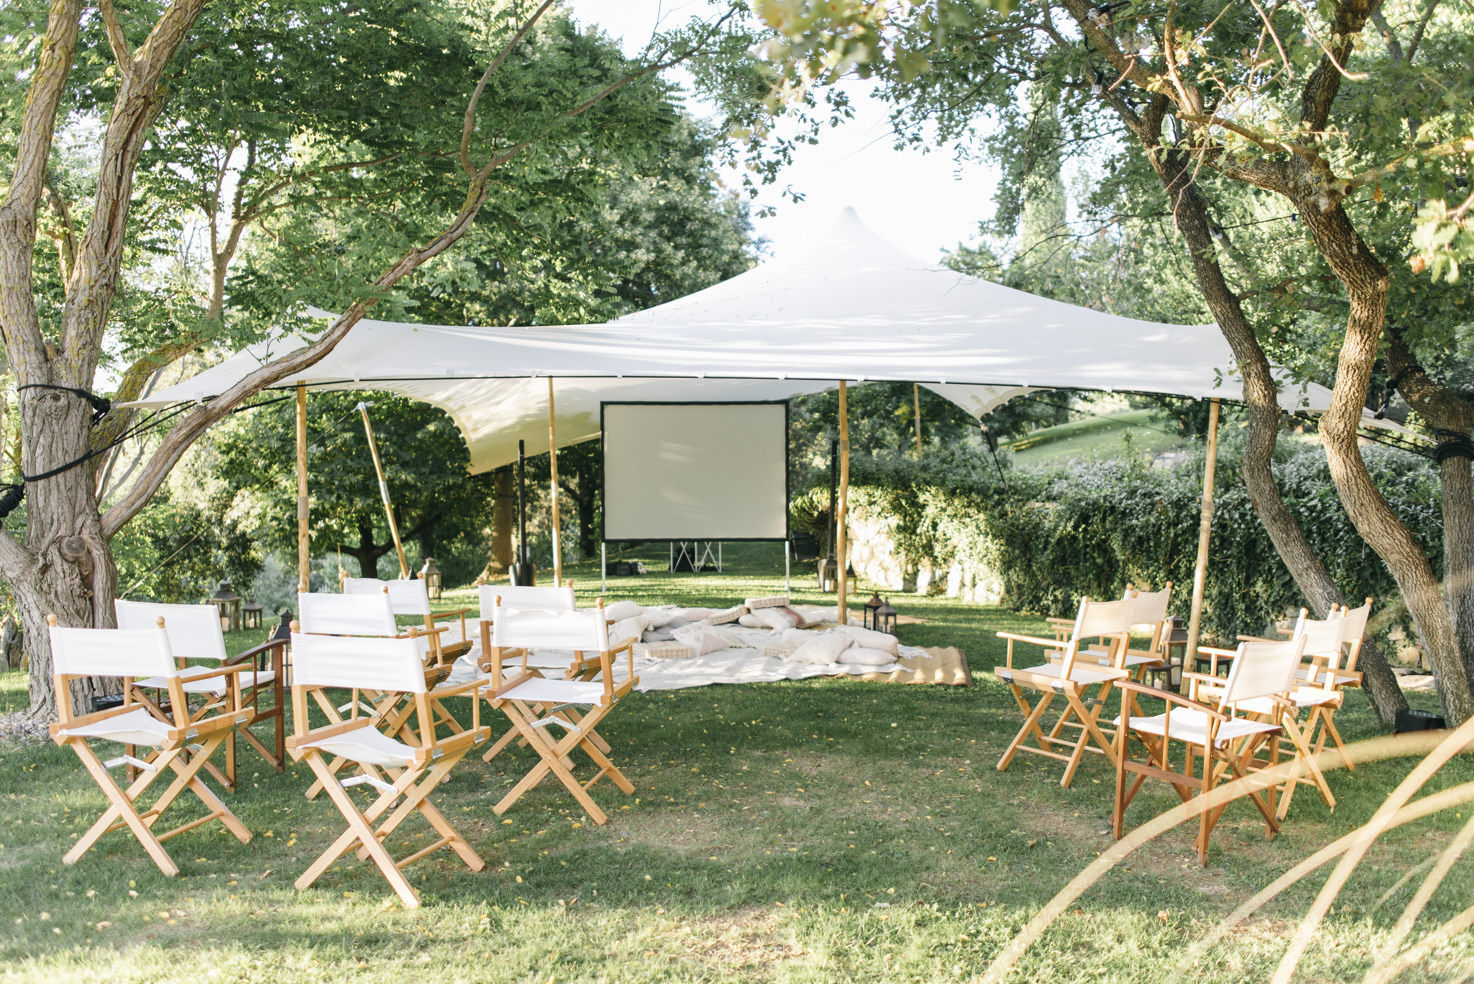 Movie night for wedding guests